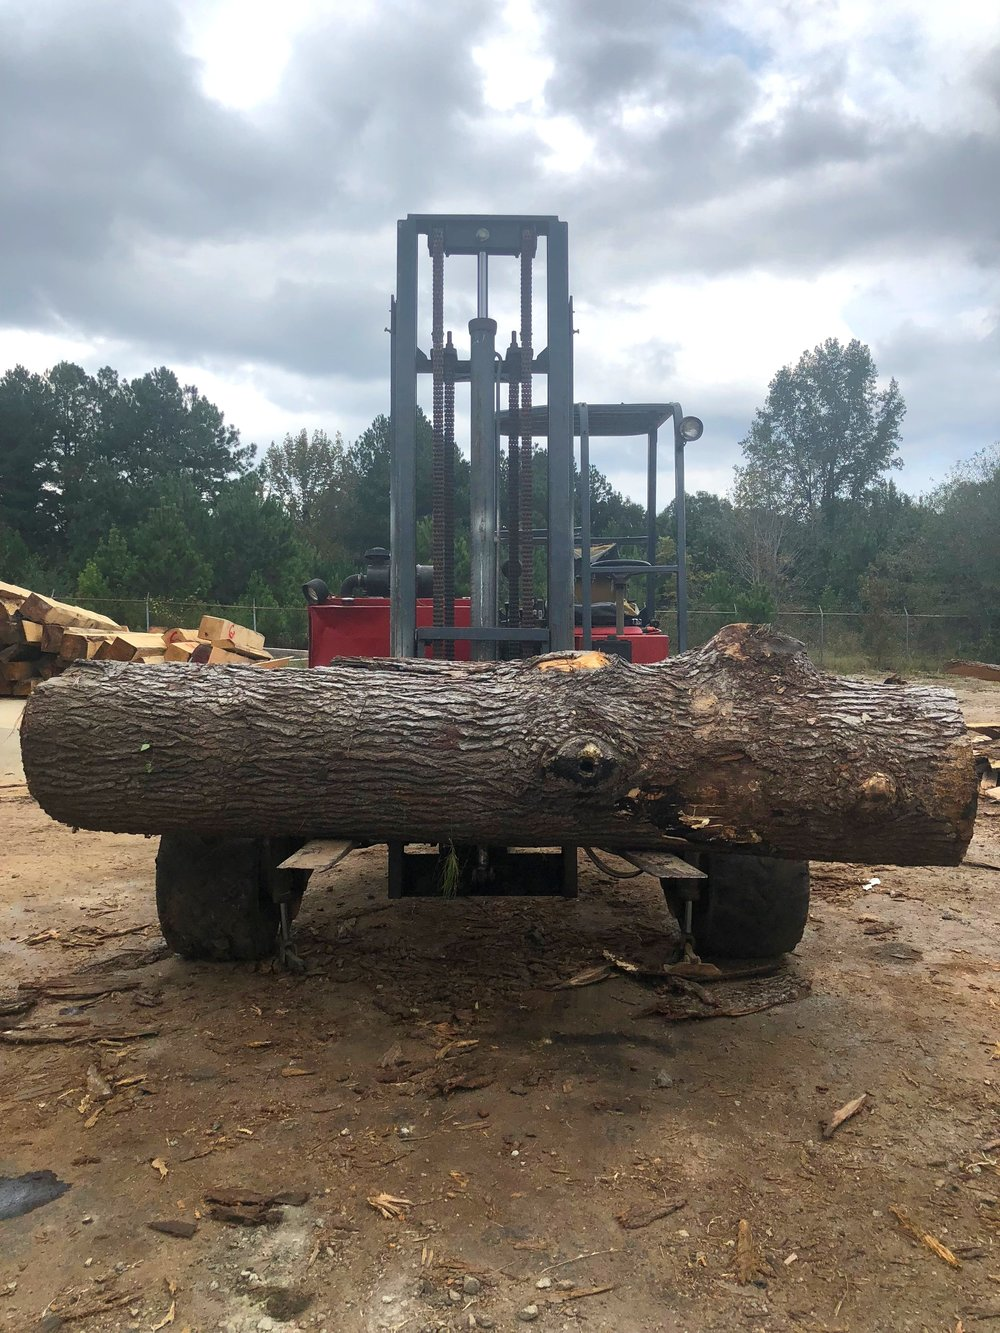 Logs are taken from the lumberyard and loaded onto the Wood-Mizer 1000 to begin the milling process.